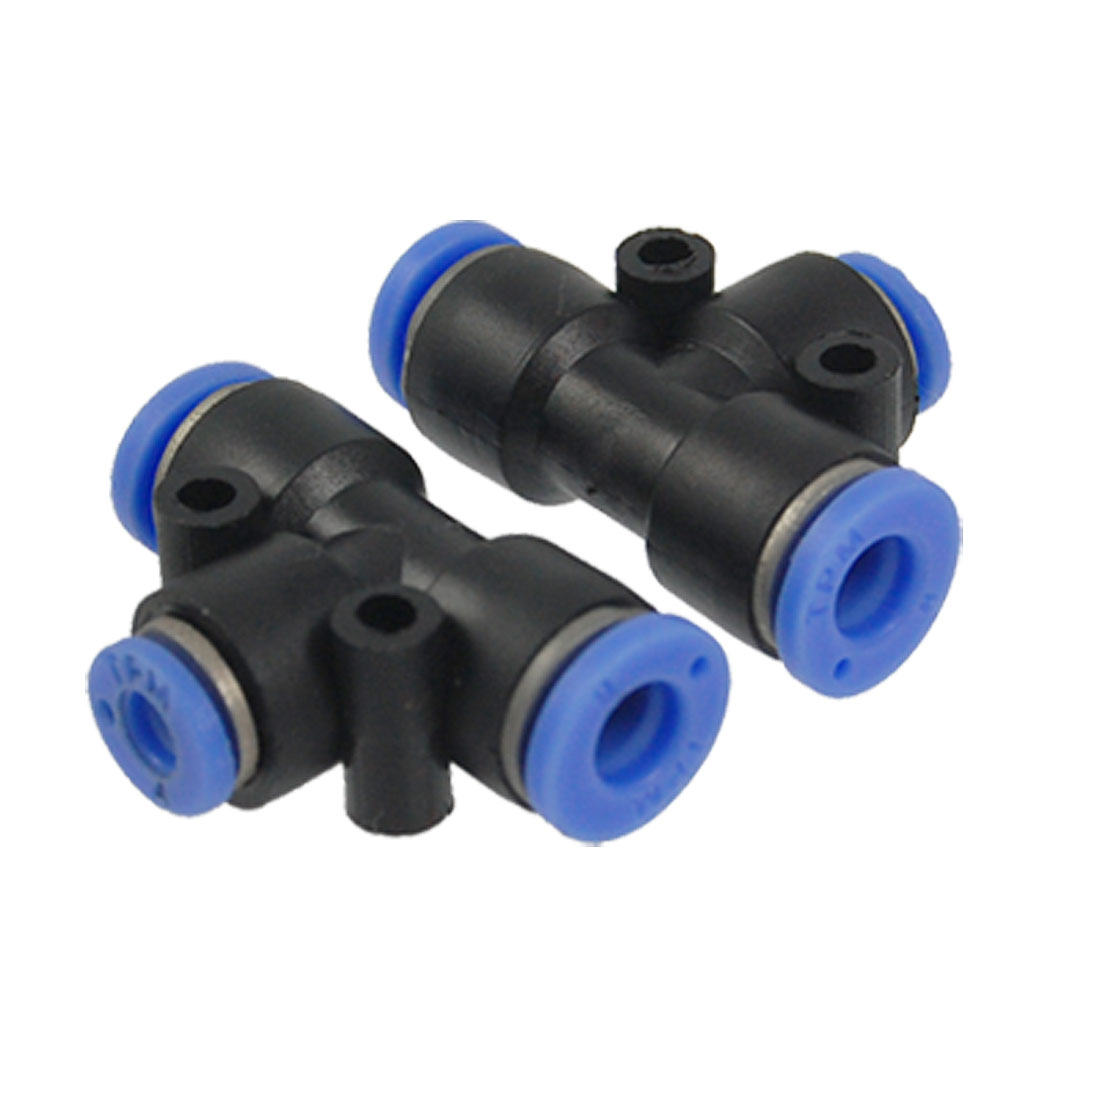 4mm to 6mm One Touch Ends Piping Push In Quick Fittings T Connector 2 Pcs